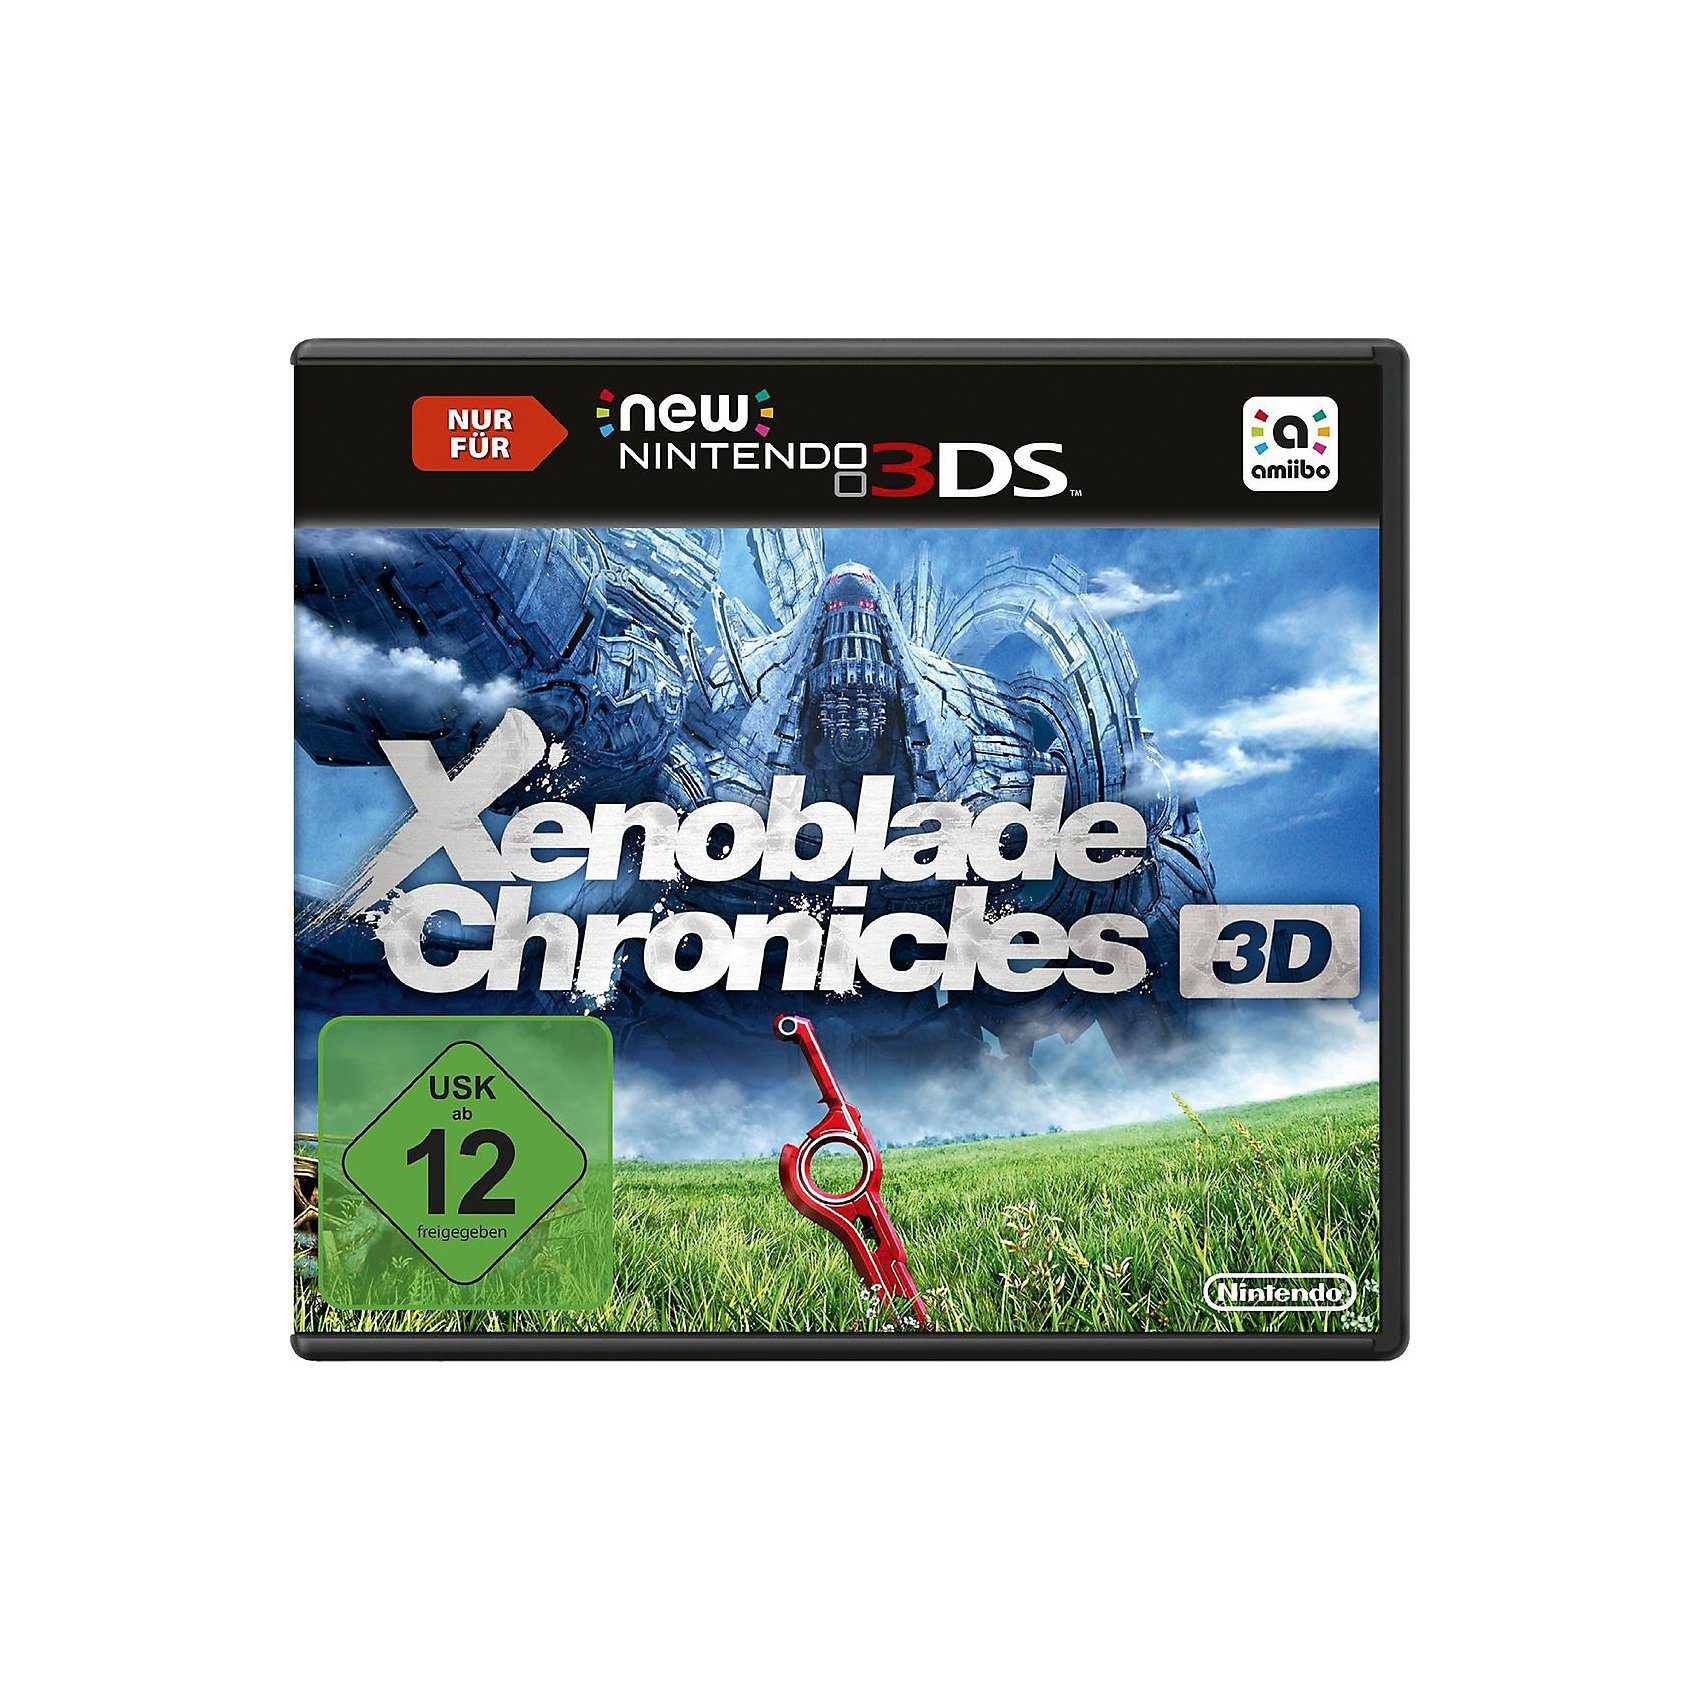 Nintendo NEW 3DS Xenoblade Chronicles 3D